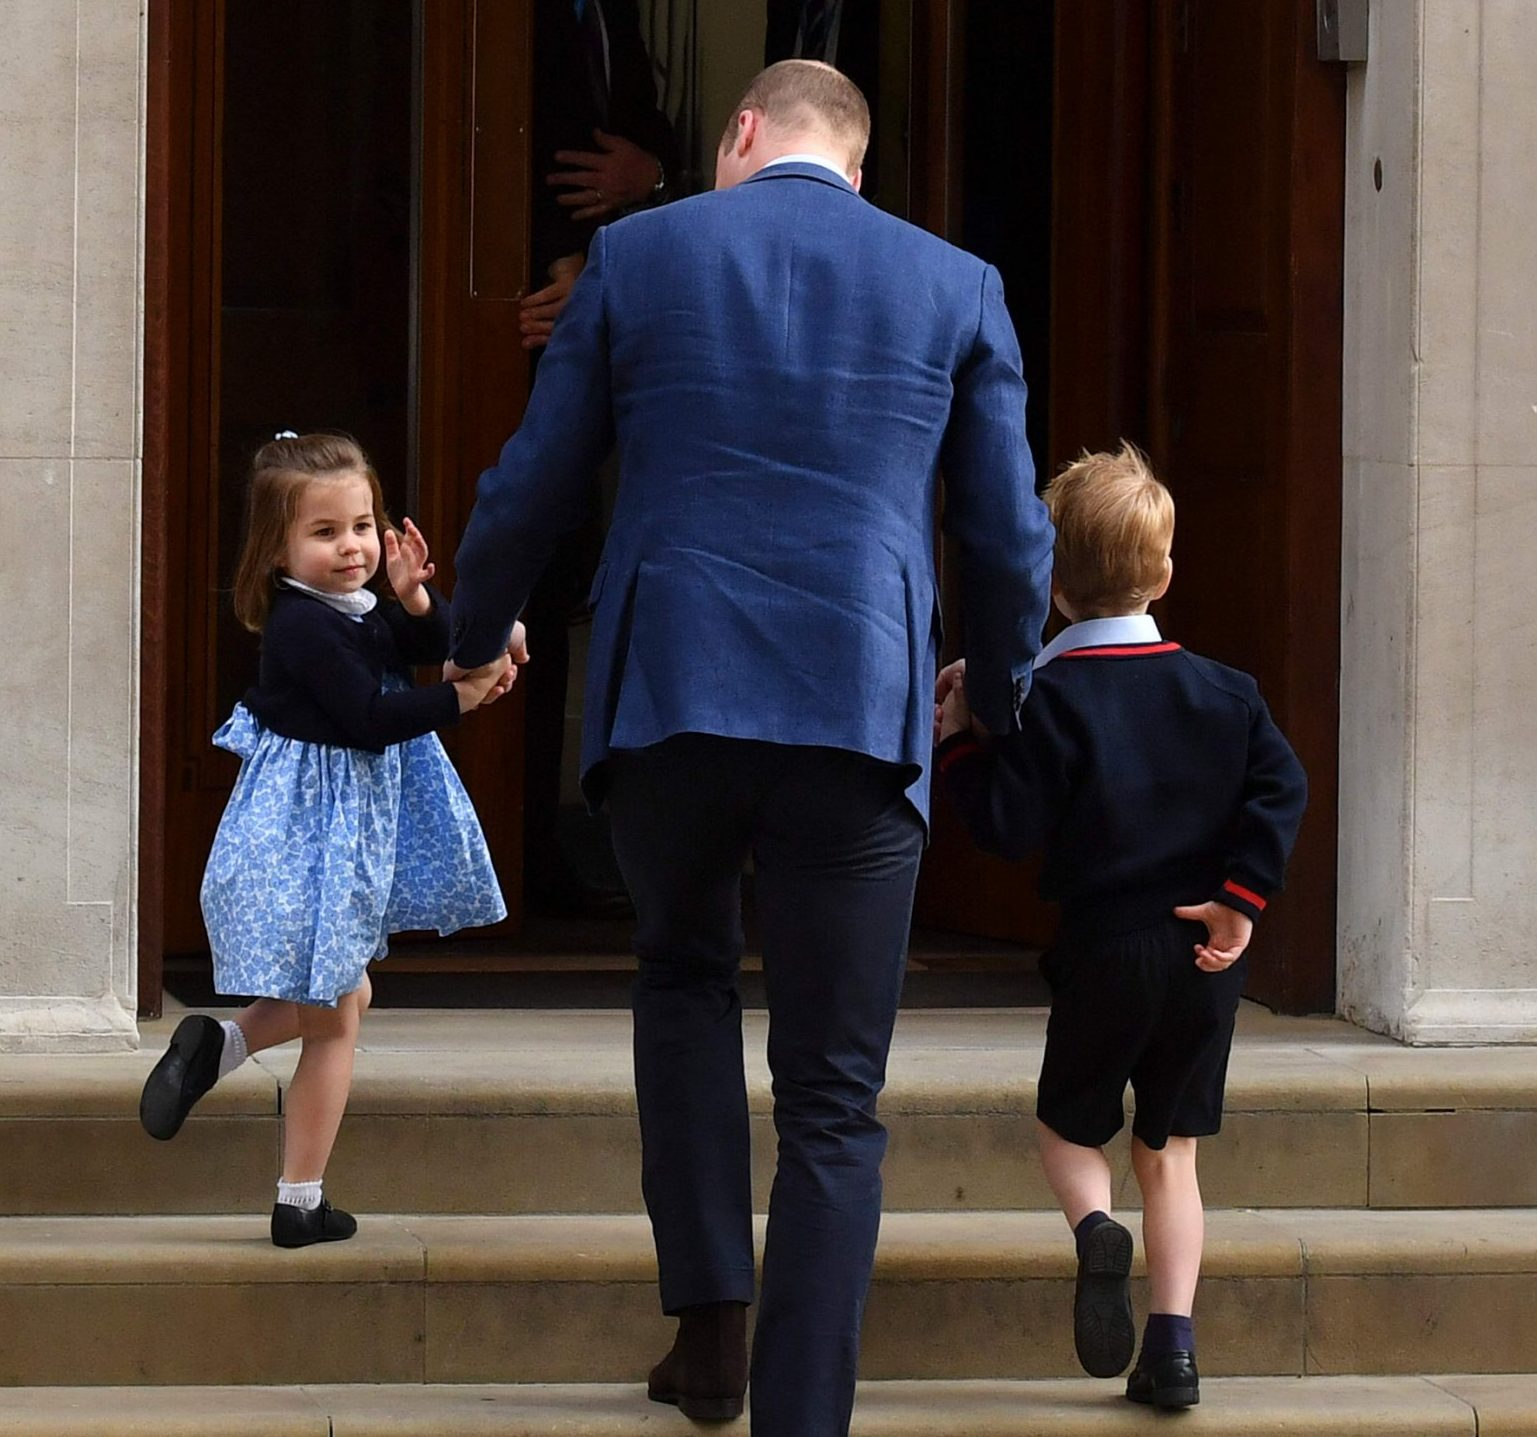 """Princess Charlotte of Cambridge (L) turns to wave at the media as she is lead in with her brother Prince George of Cambridge (R) by their father Britain's Prince William, Duke of Cambridge, (C) at the Lindo Wing of St Mary's Hospital in central London, on April 23, 2018, to visit Catherine, Duchess of Cambridge, and their new-born son. Kate, the wife of Britain's Prince William, has given birth to a baby son, Kensington Palace announced Monday. """"Her Royal Highness The Duchess of Cambridge was safely delivered of a son at 11:01 (1001 GMT),"""" the palace said in a statement. The baby boy weighs eight pounds and seven ounces (3.8 kilogrammes). / AFP PHOTO / Ben STANSALLBEN STANSALL/AFP/Getty Images"""